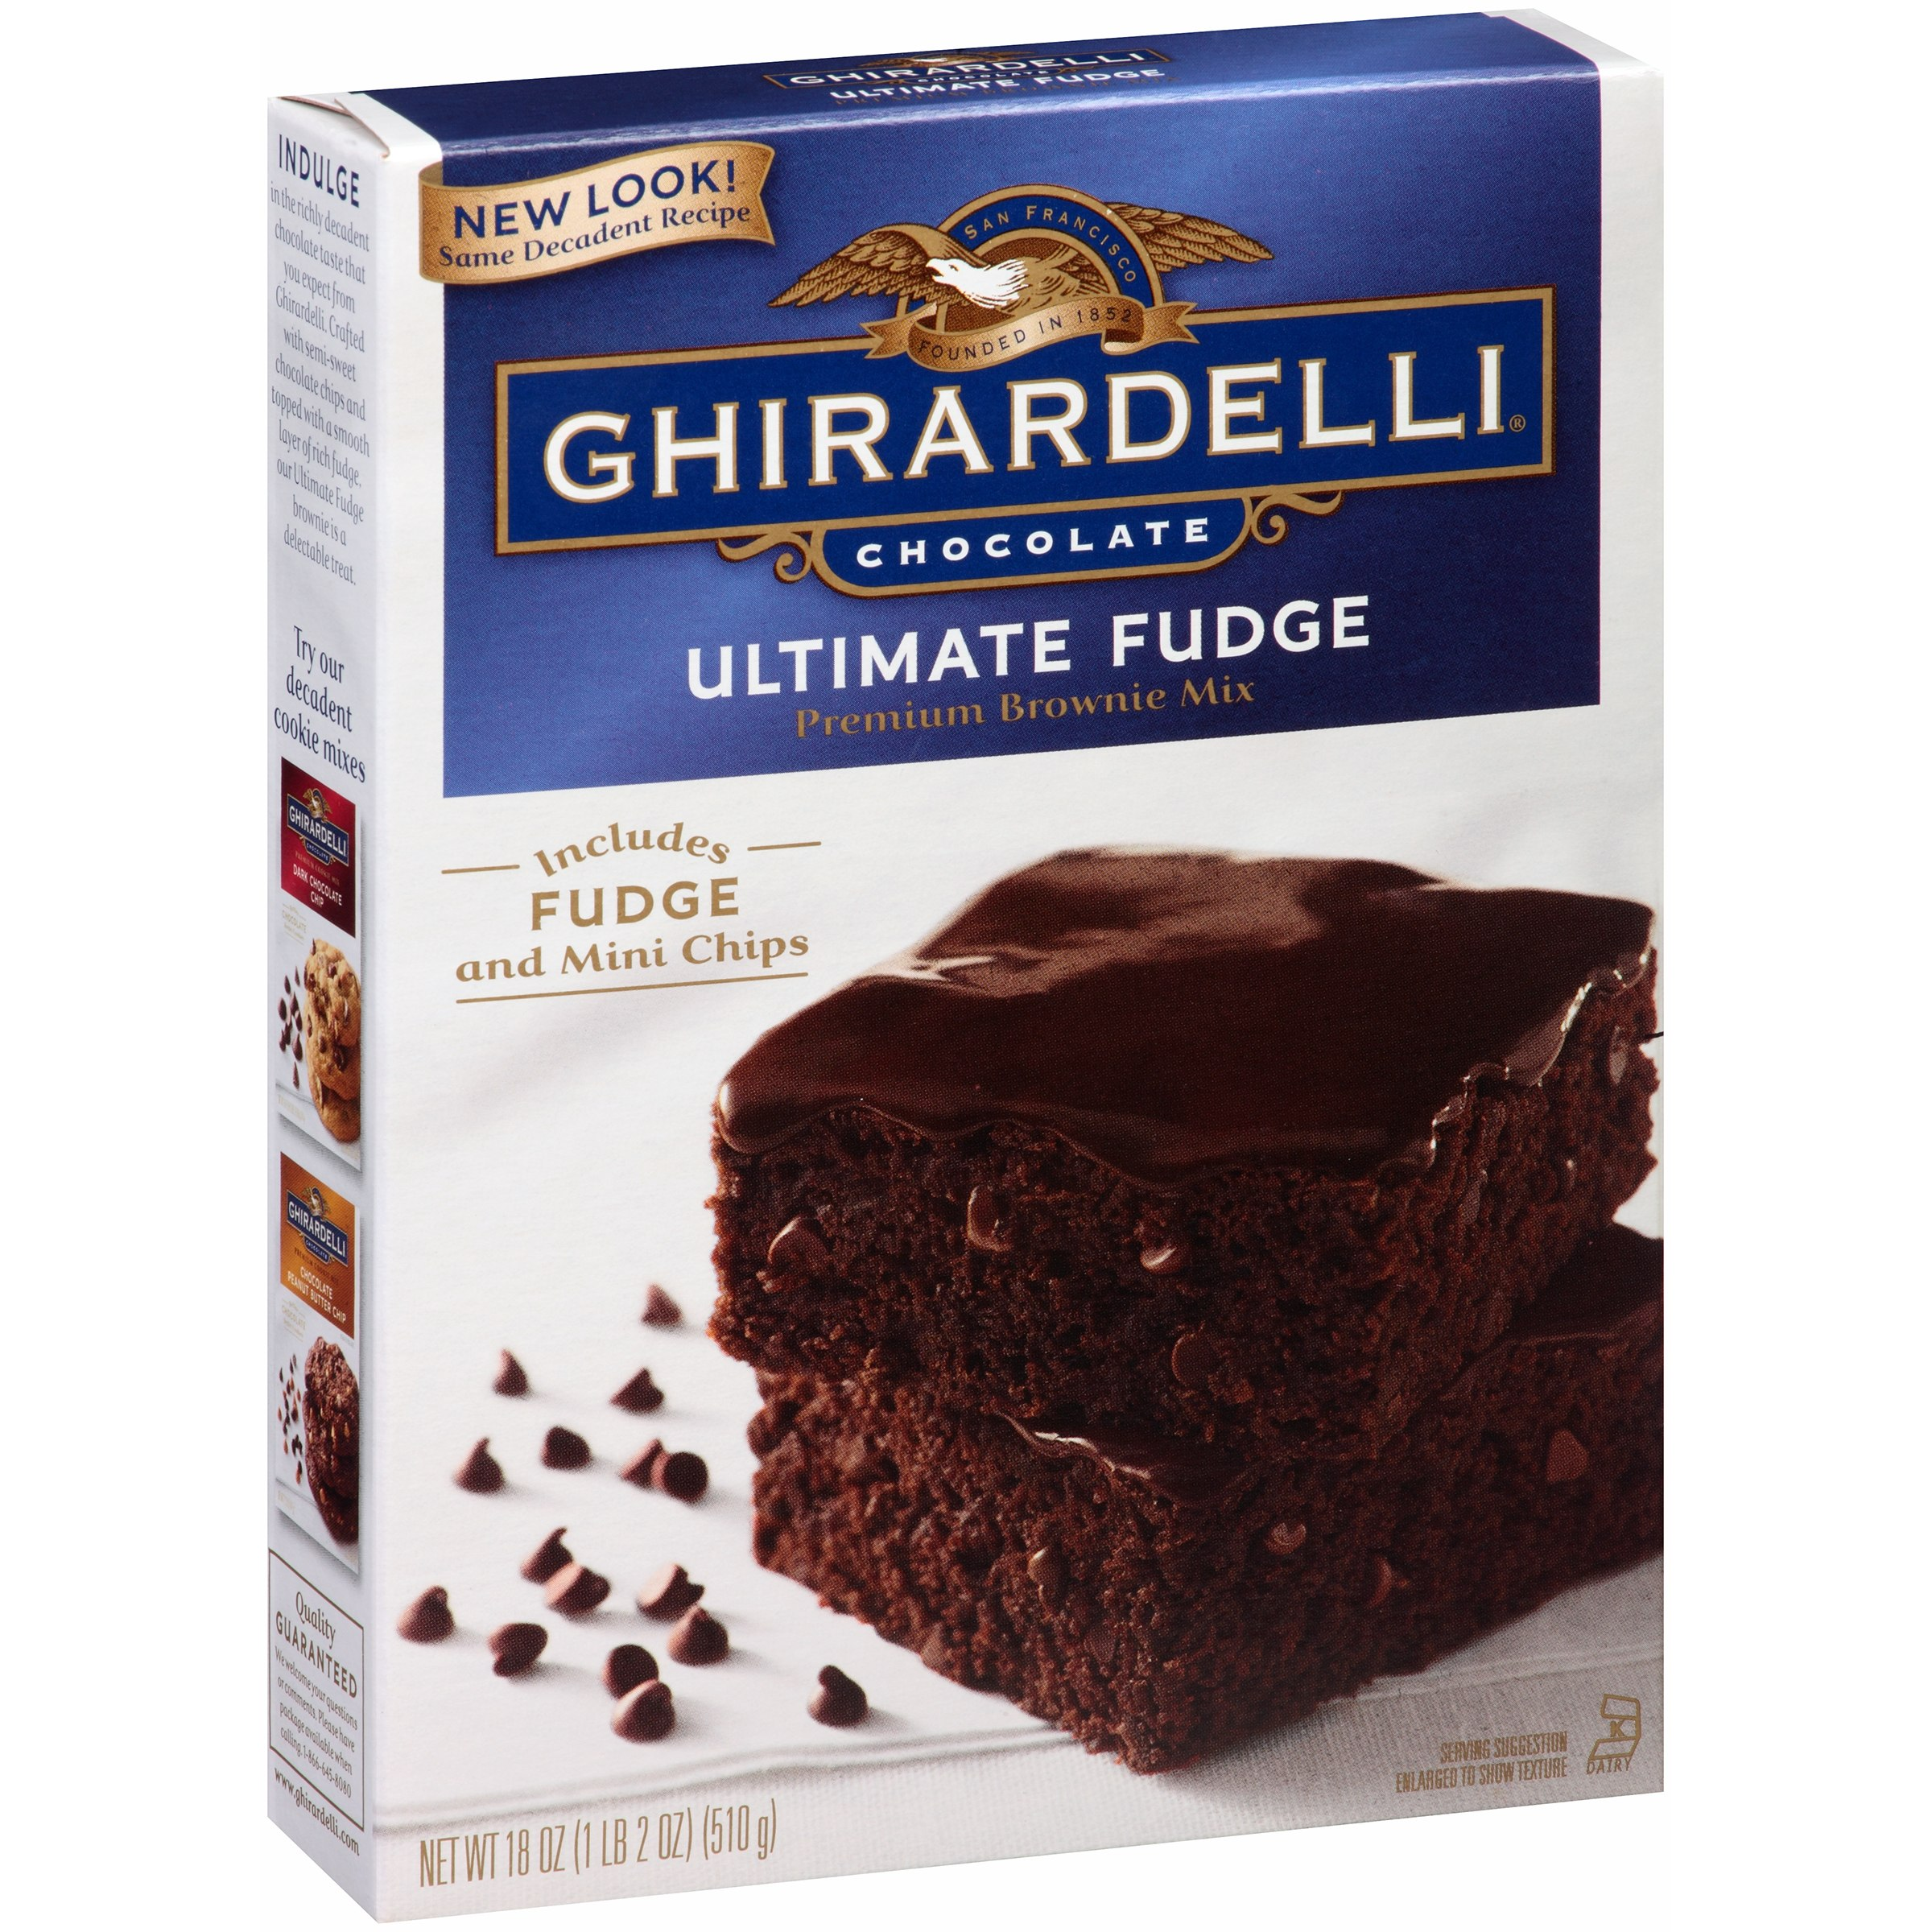 Ghirardelli Chocolate Brownie Mix, Ultimate Fudge, 18 Oz